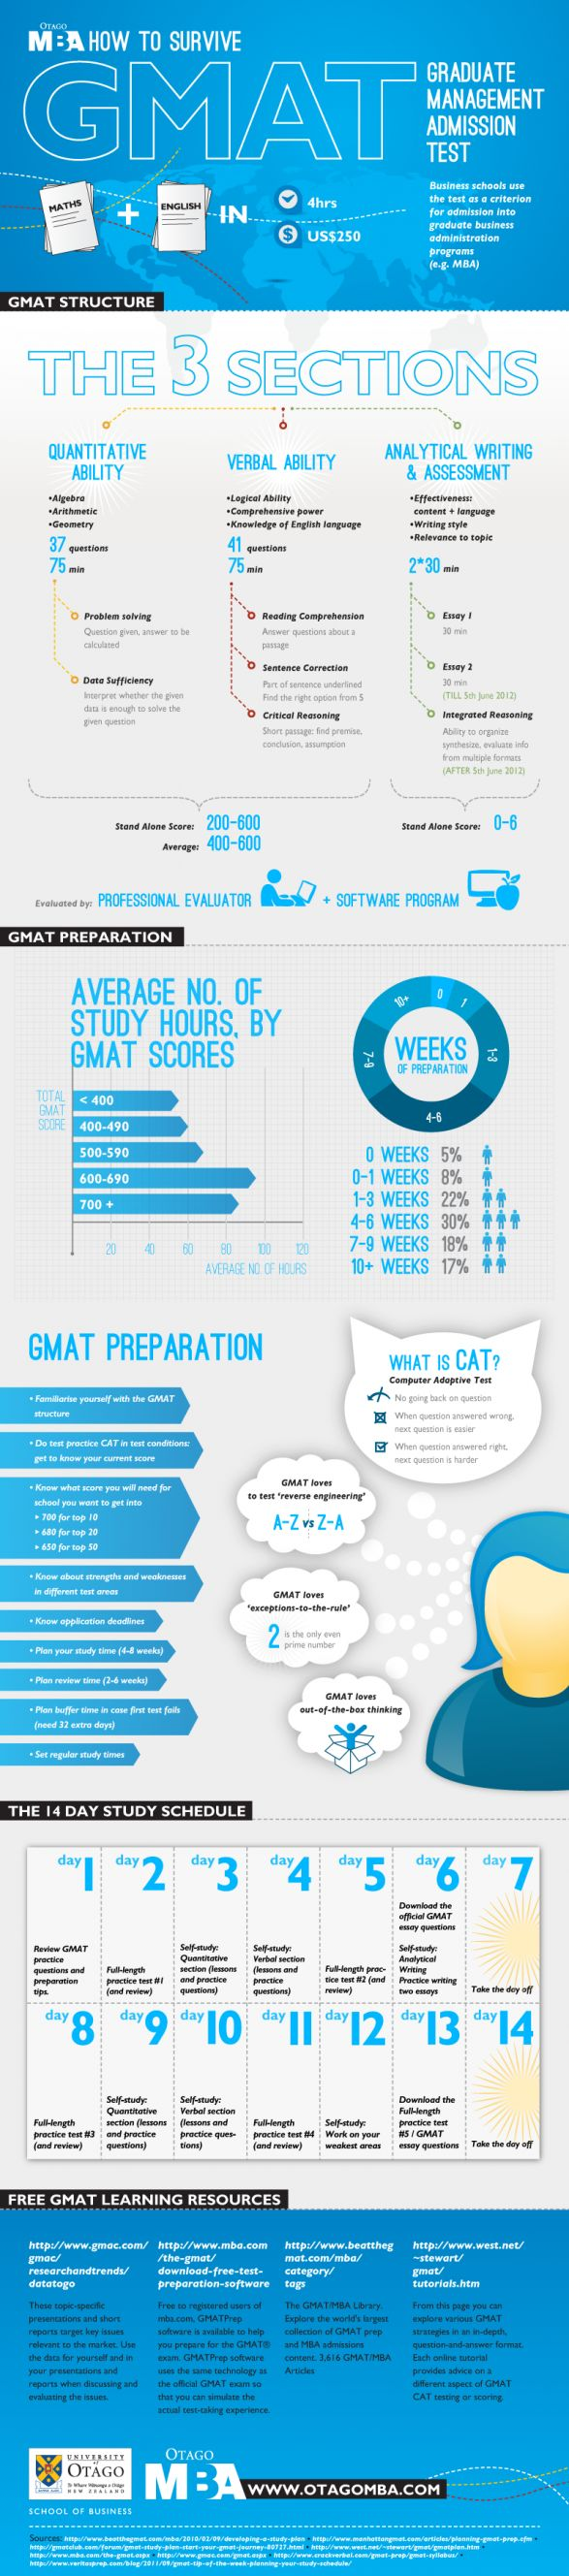 Tips and free resources to beat the GMAT!